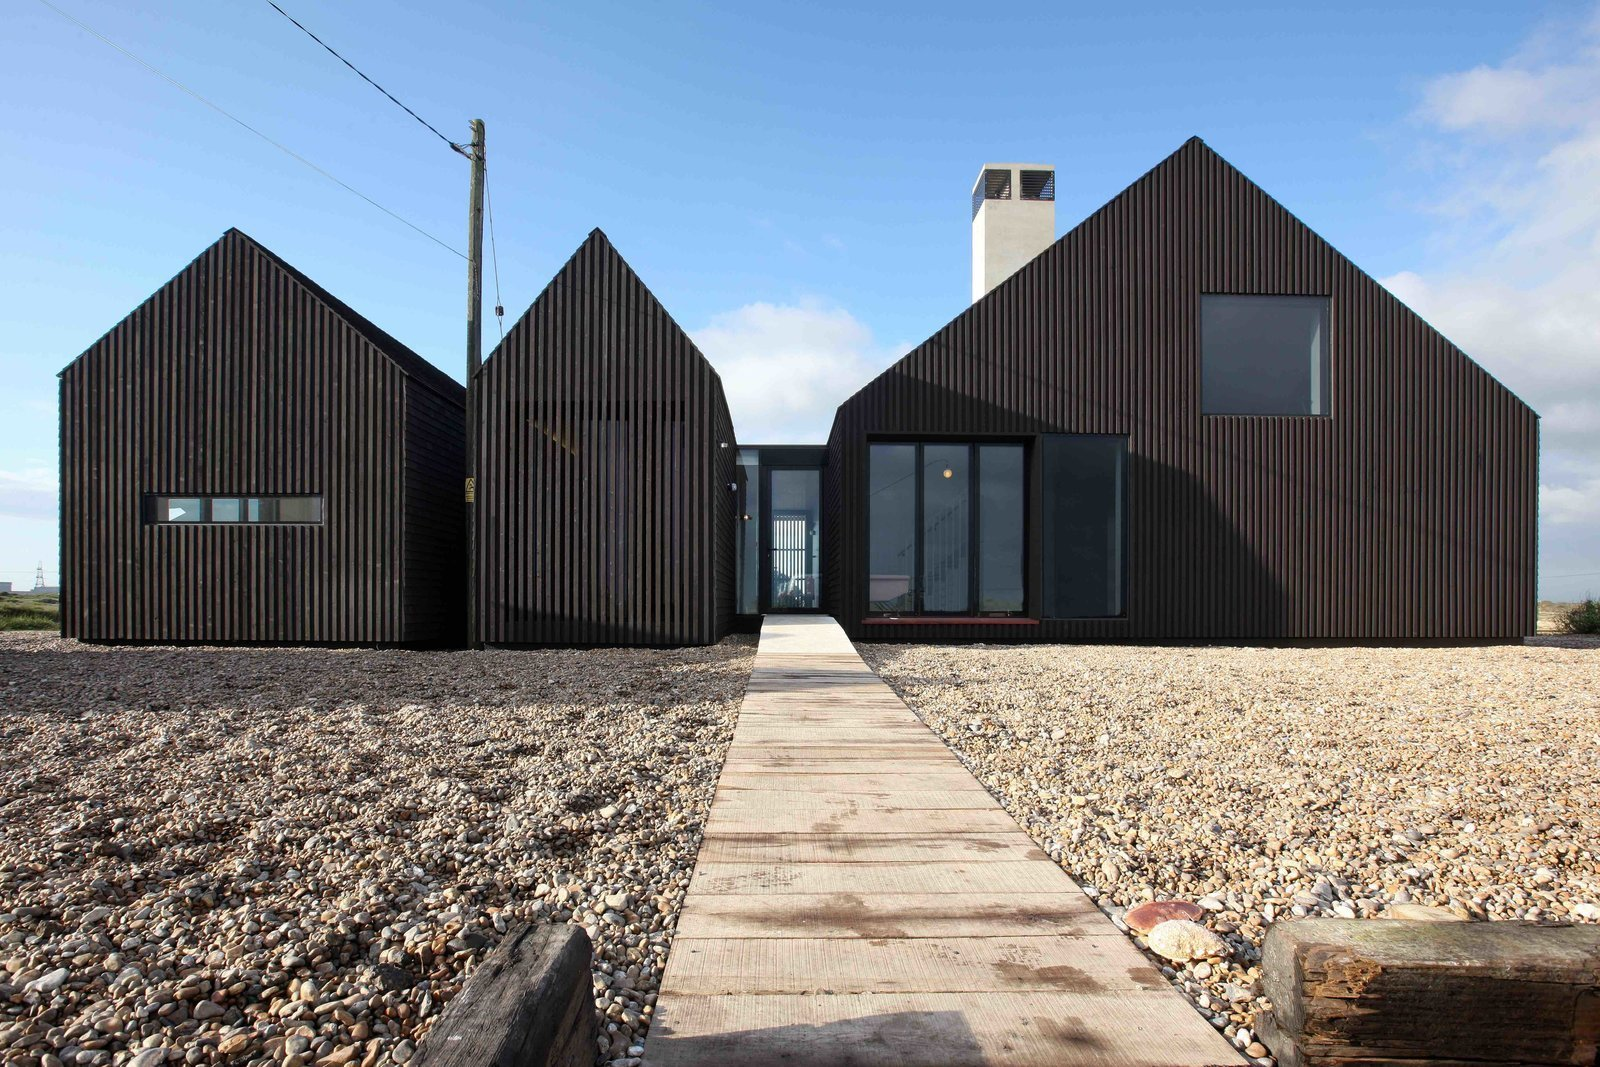 Photo 10 of 13 in 6 British Vacation Homes You Can Stay in That Were Designed by Renowned Architects